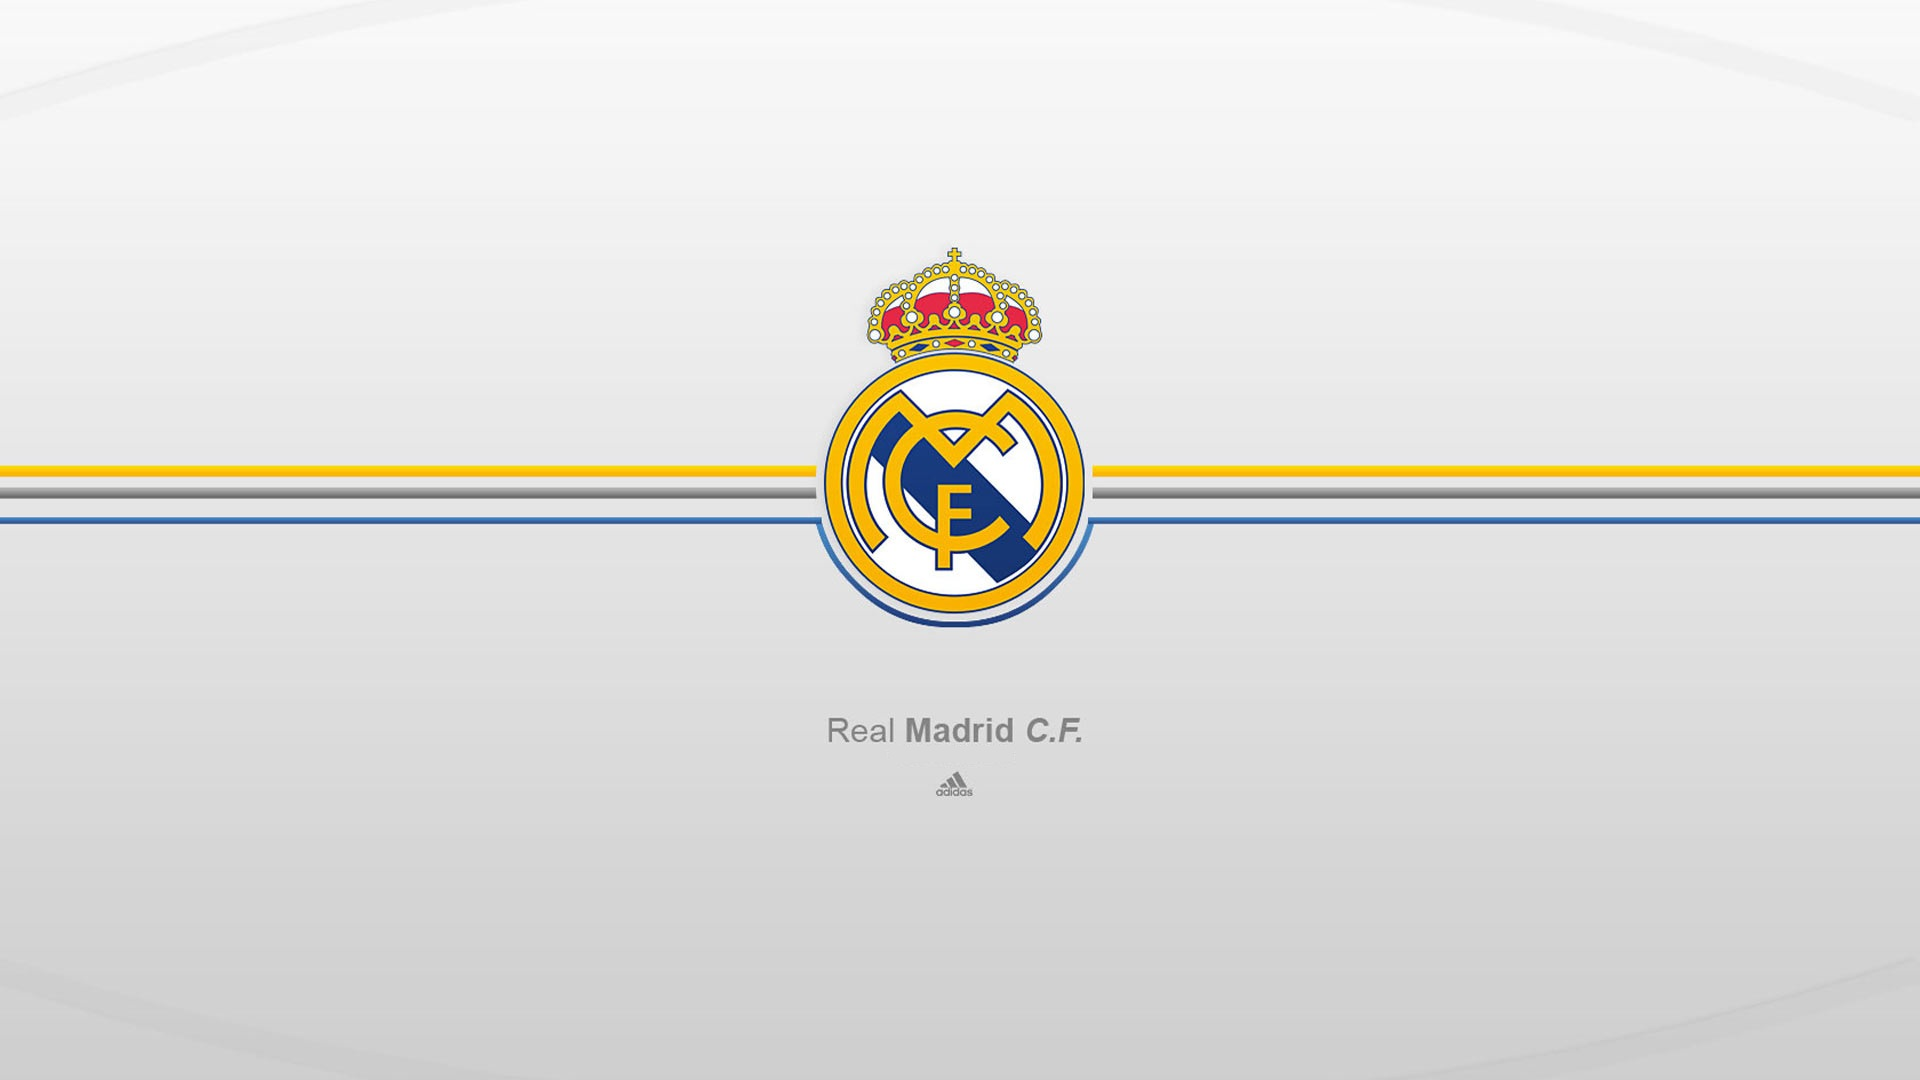 Real madrid football wallpaper voltagebd Image collections